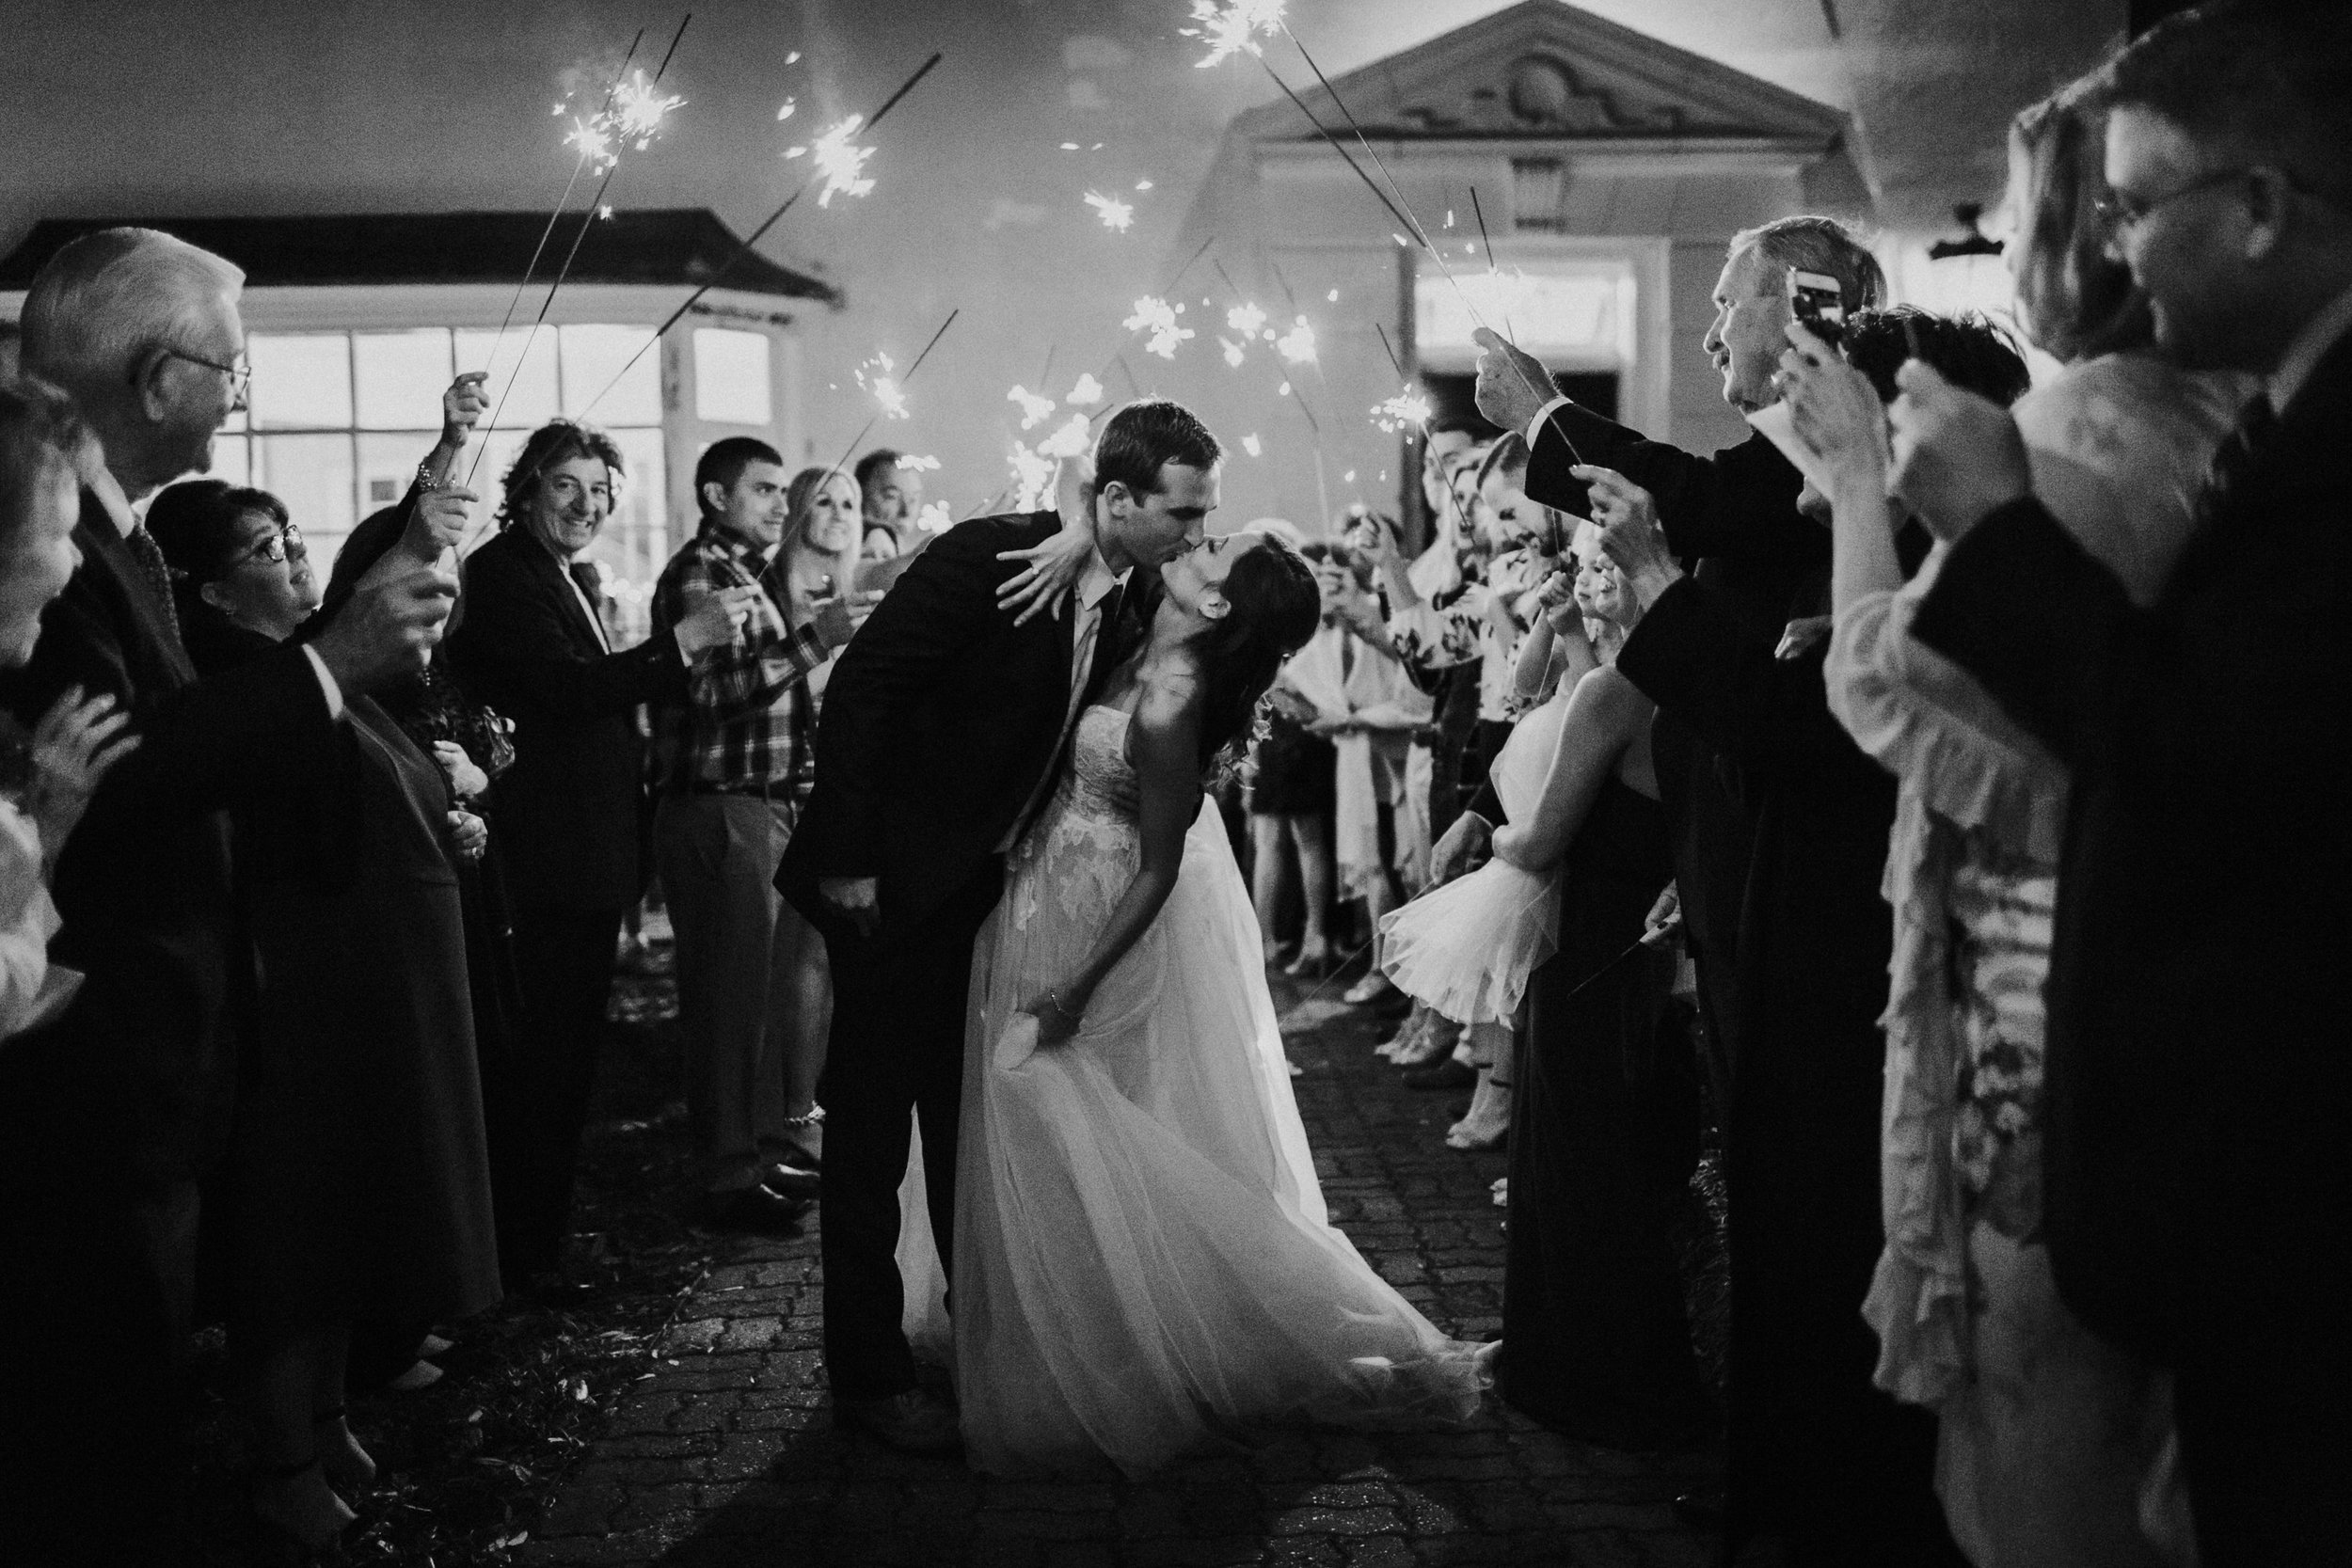 Southern Fete, Southern Wedding, Party Central, Sparklers, Bride and Groom exit